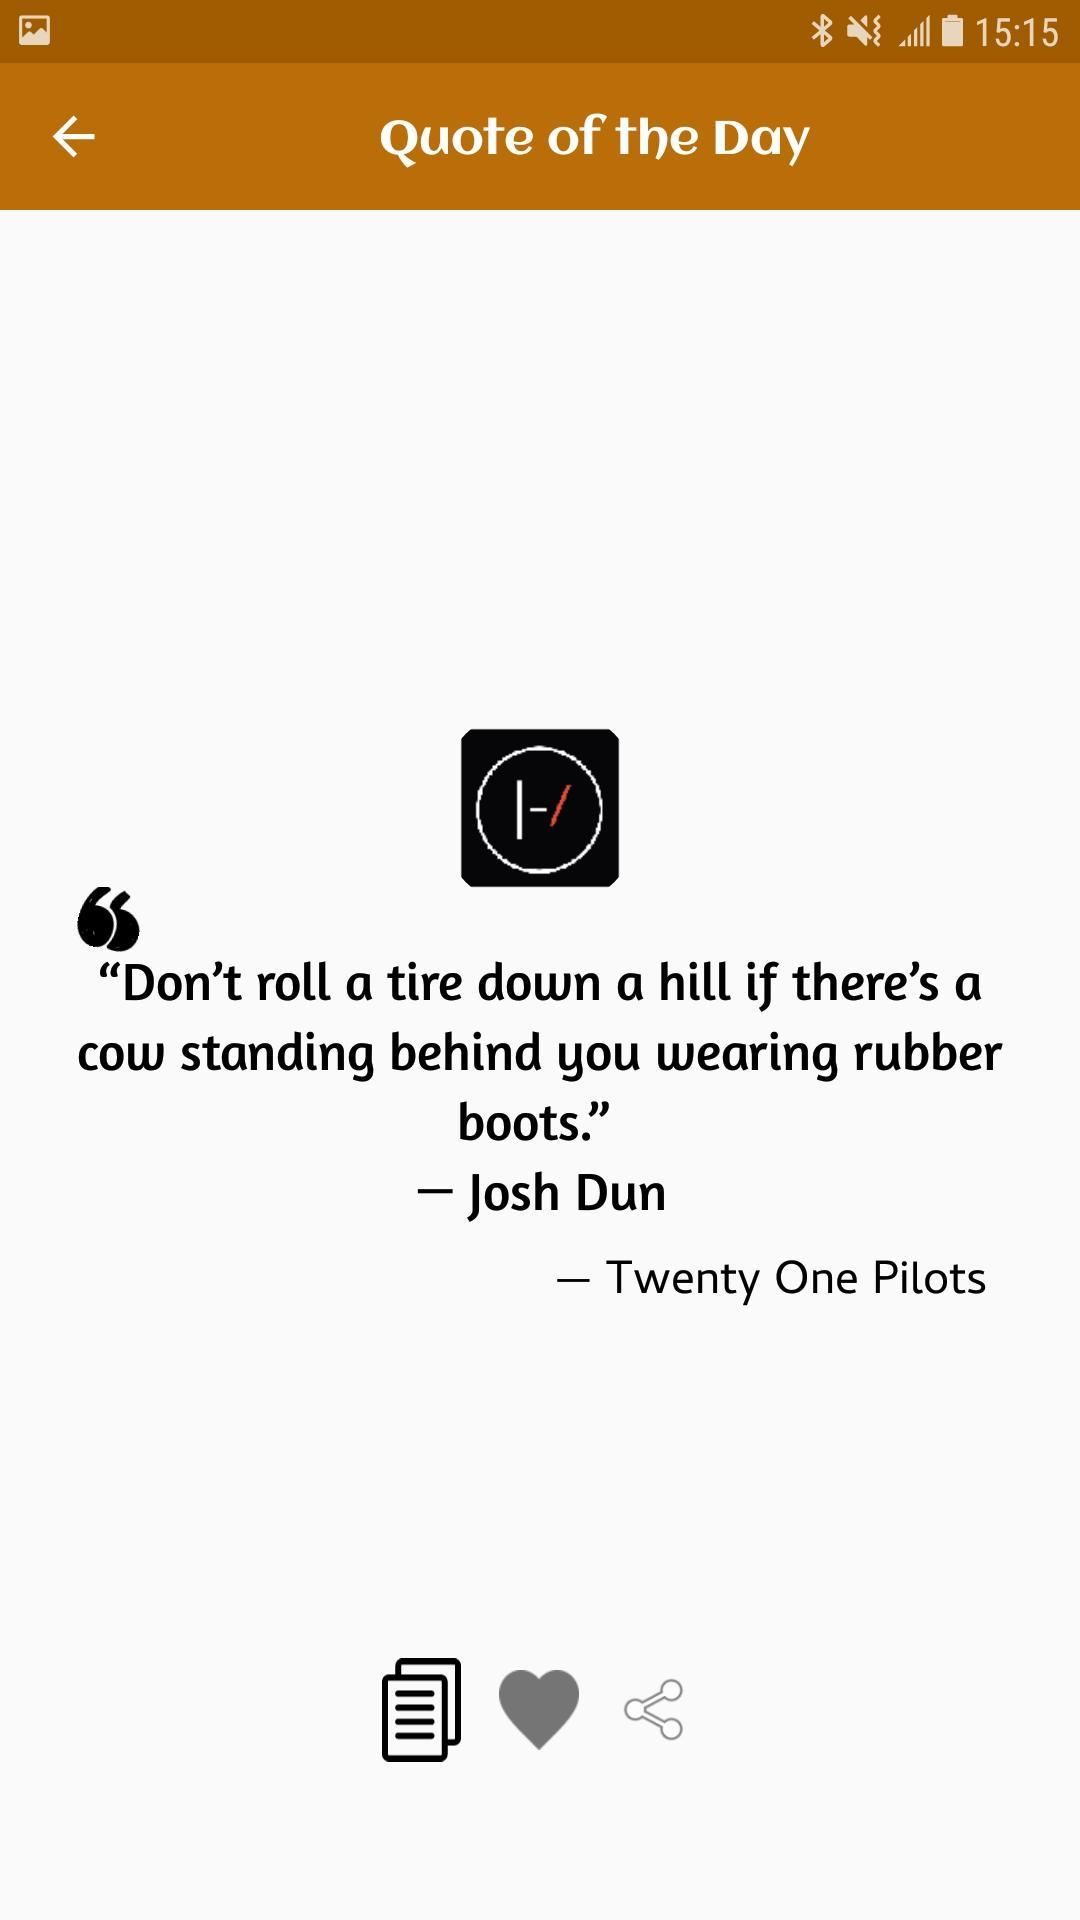 Twenty One Pilots Quotes, Lyrics and Facts for Android - APK ...